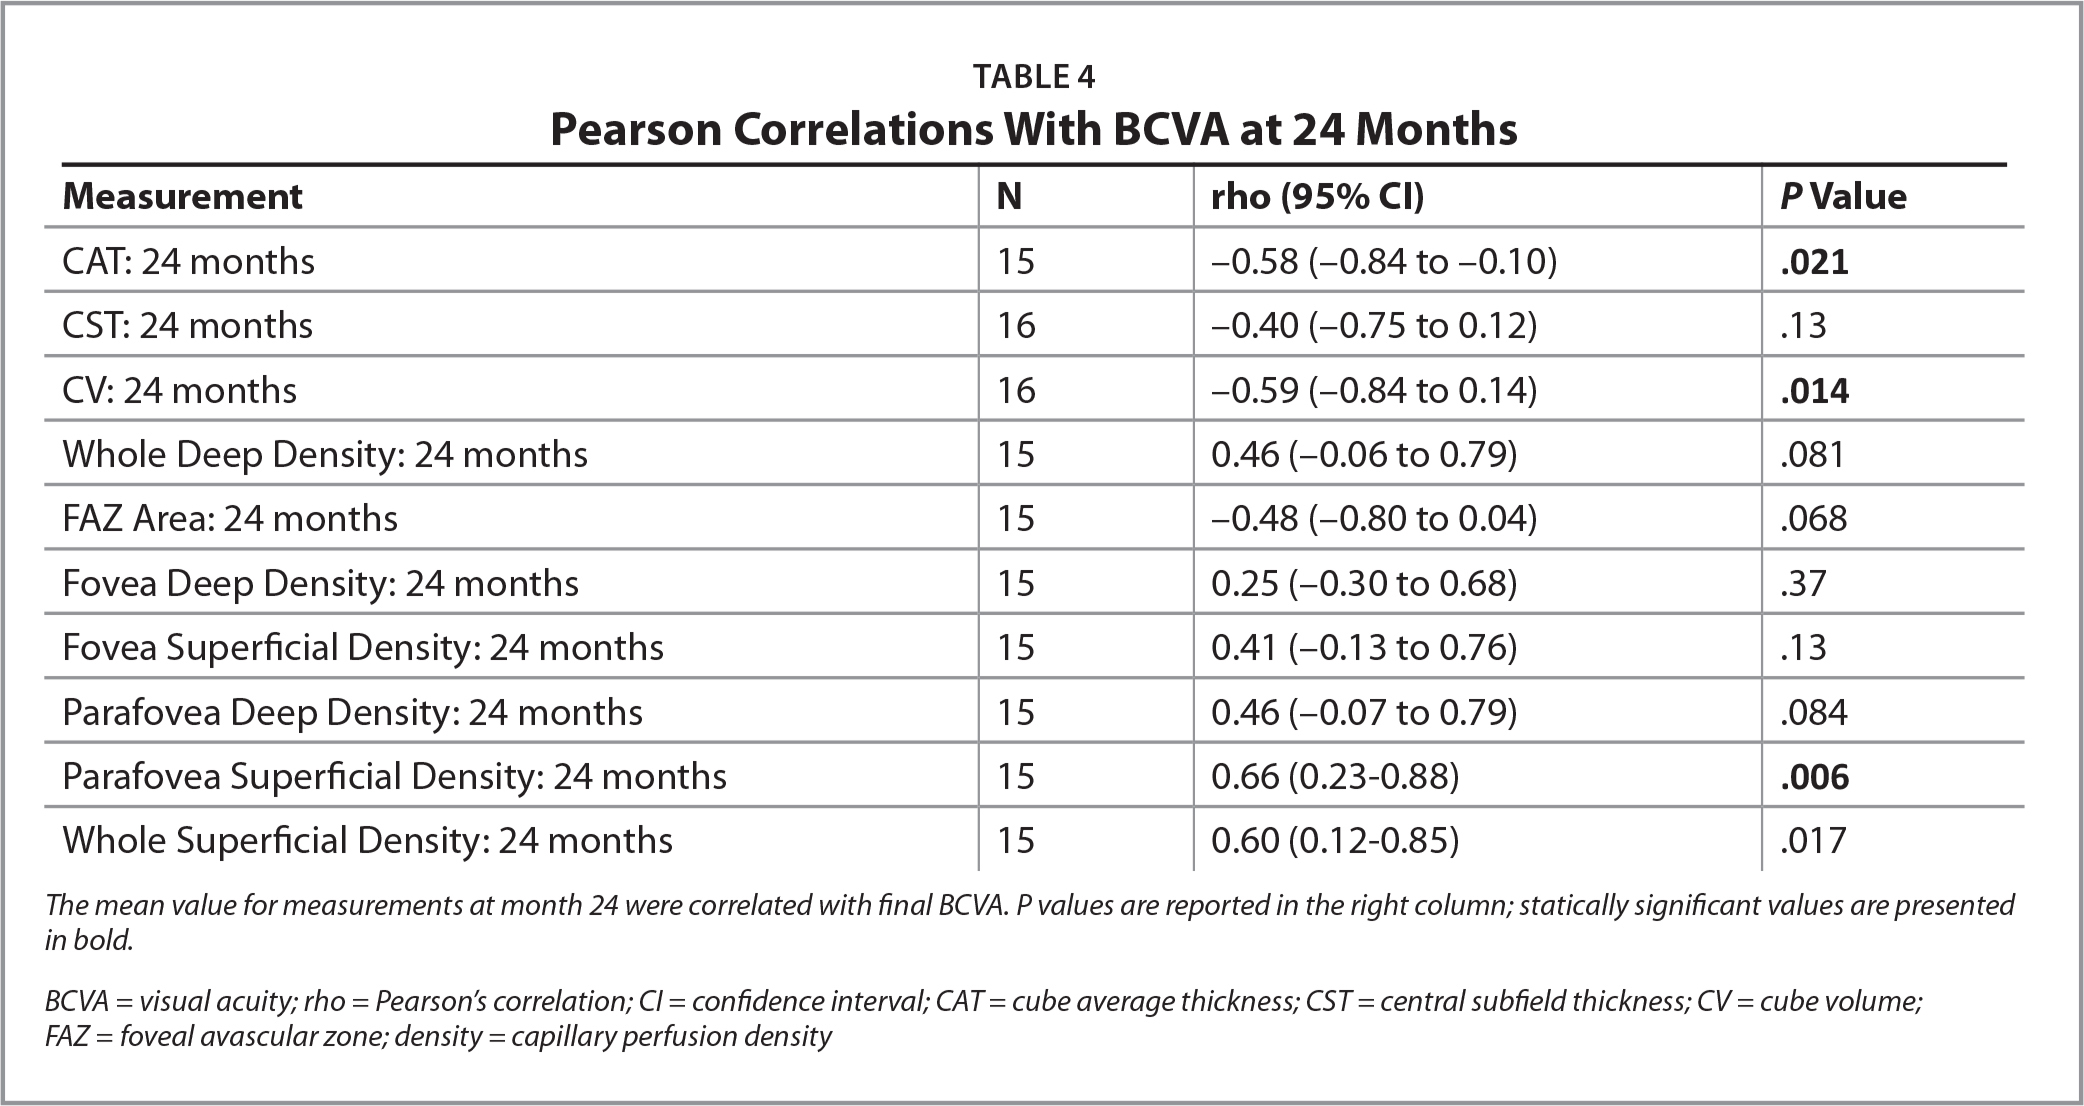 Pearson Correlations With BCVA at 24 Months